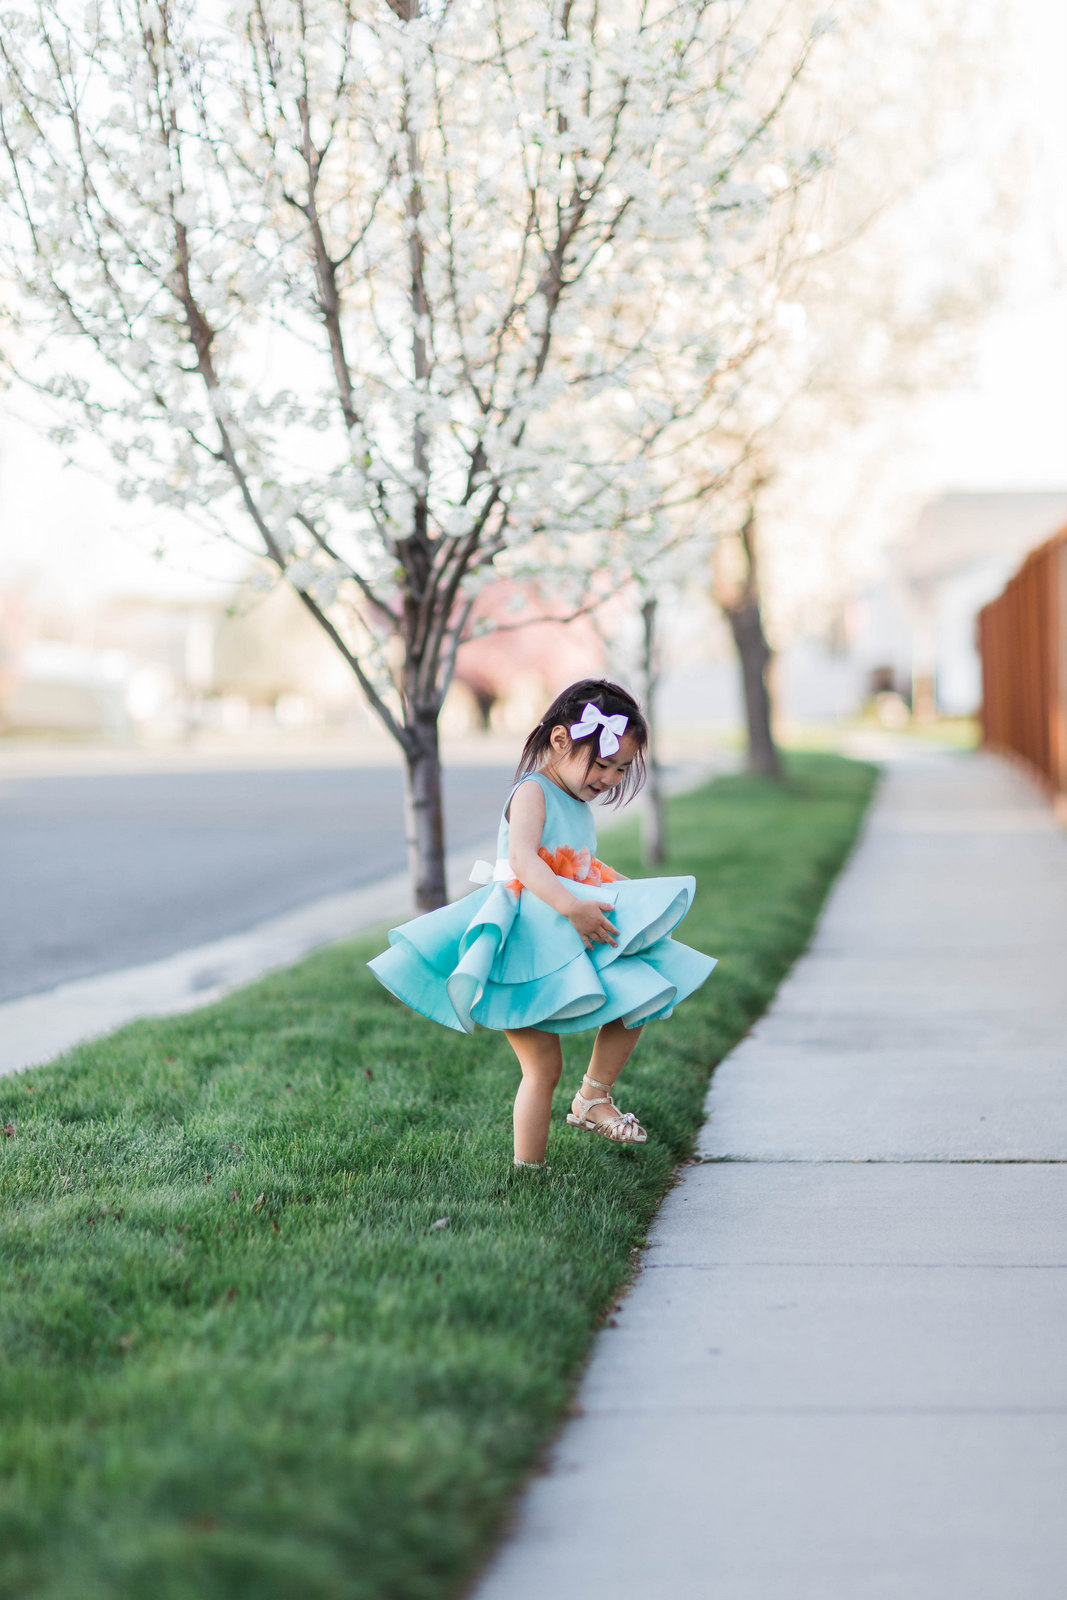 5 Fun Mothers Day Activities Every Mom Will Love by lifestyle blogger Sandy A La Mode